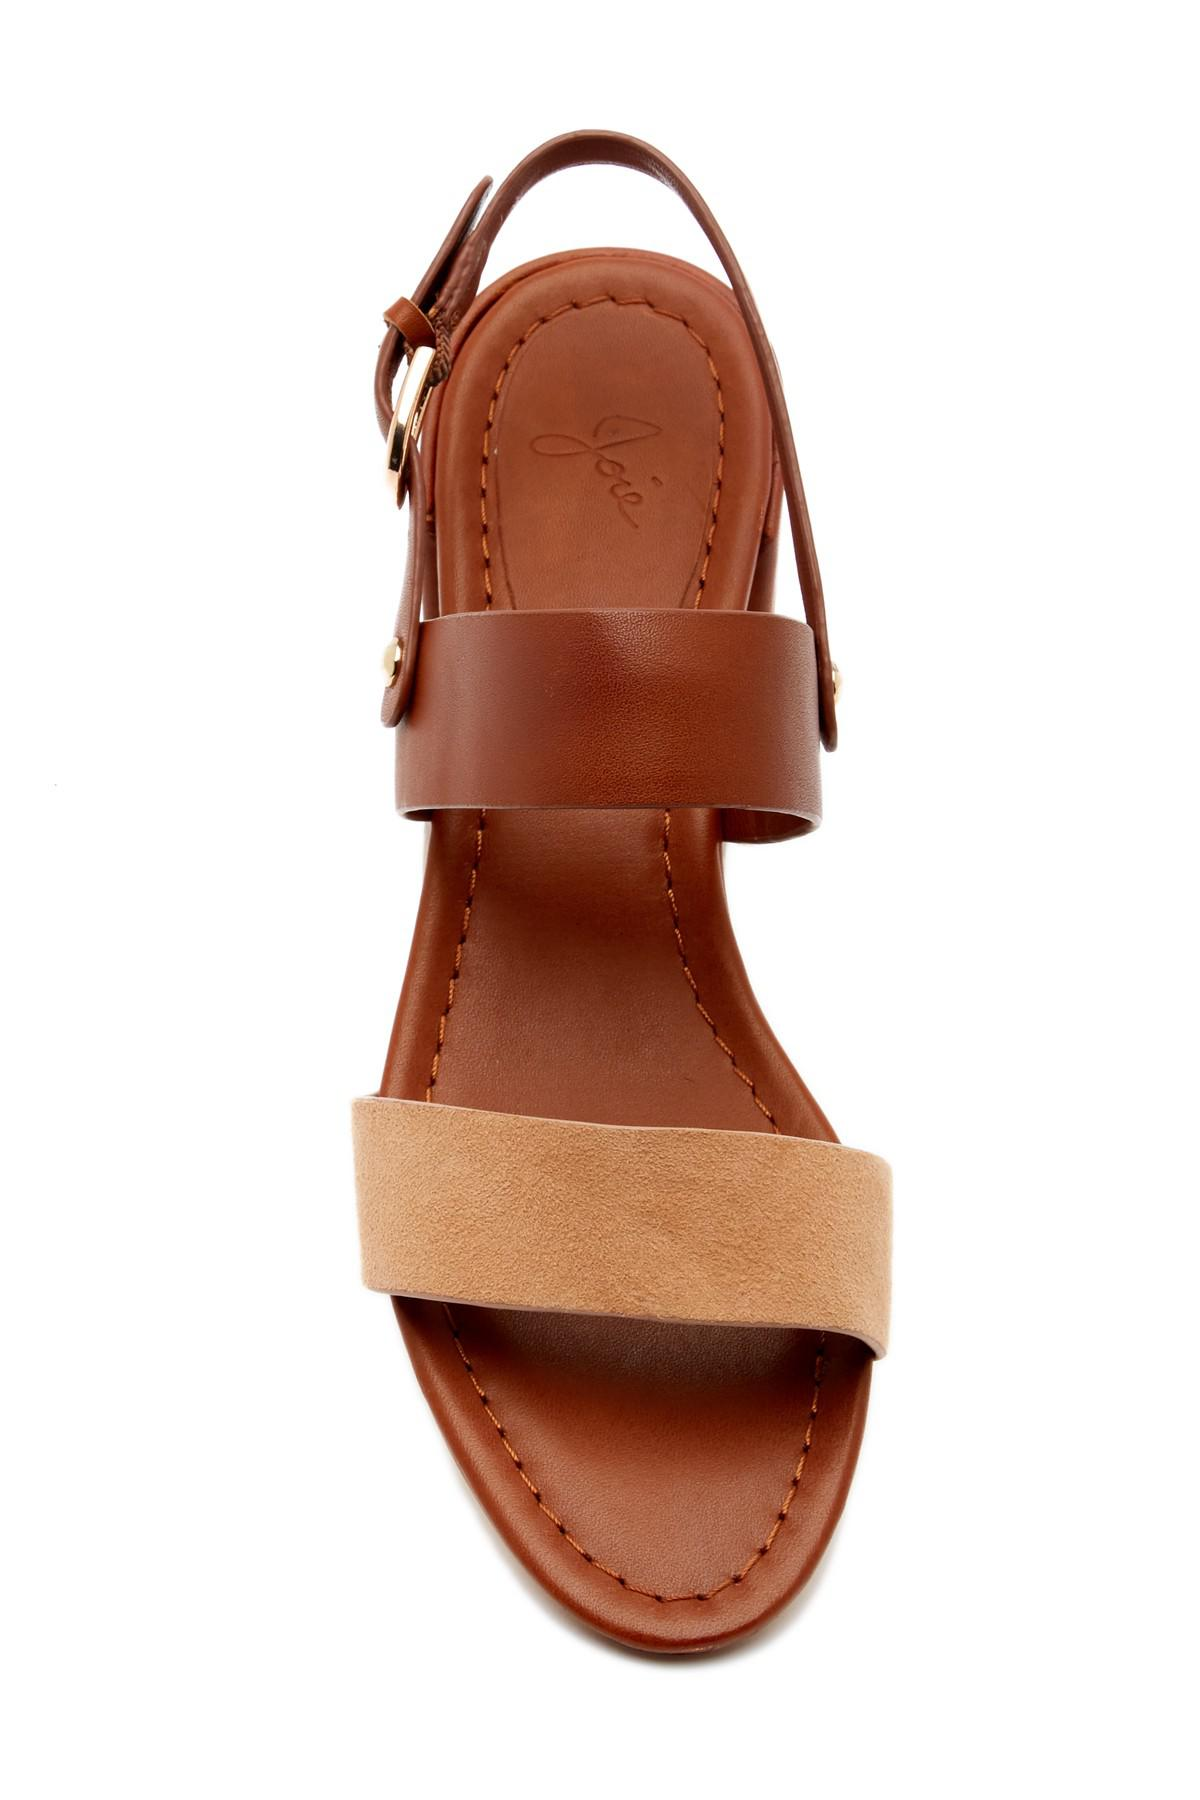 Lyst Joie Rach Leather Sandal In Brown Clarette Wedges Coraline Beige Gallery